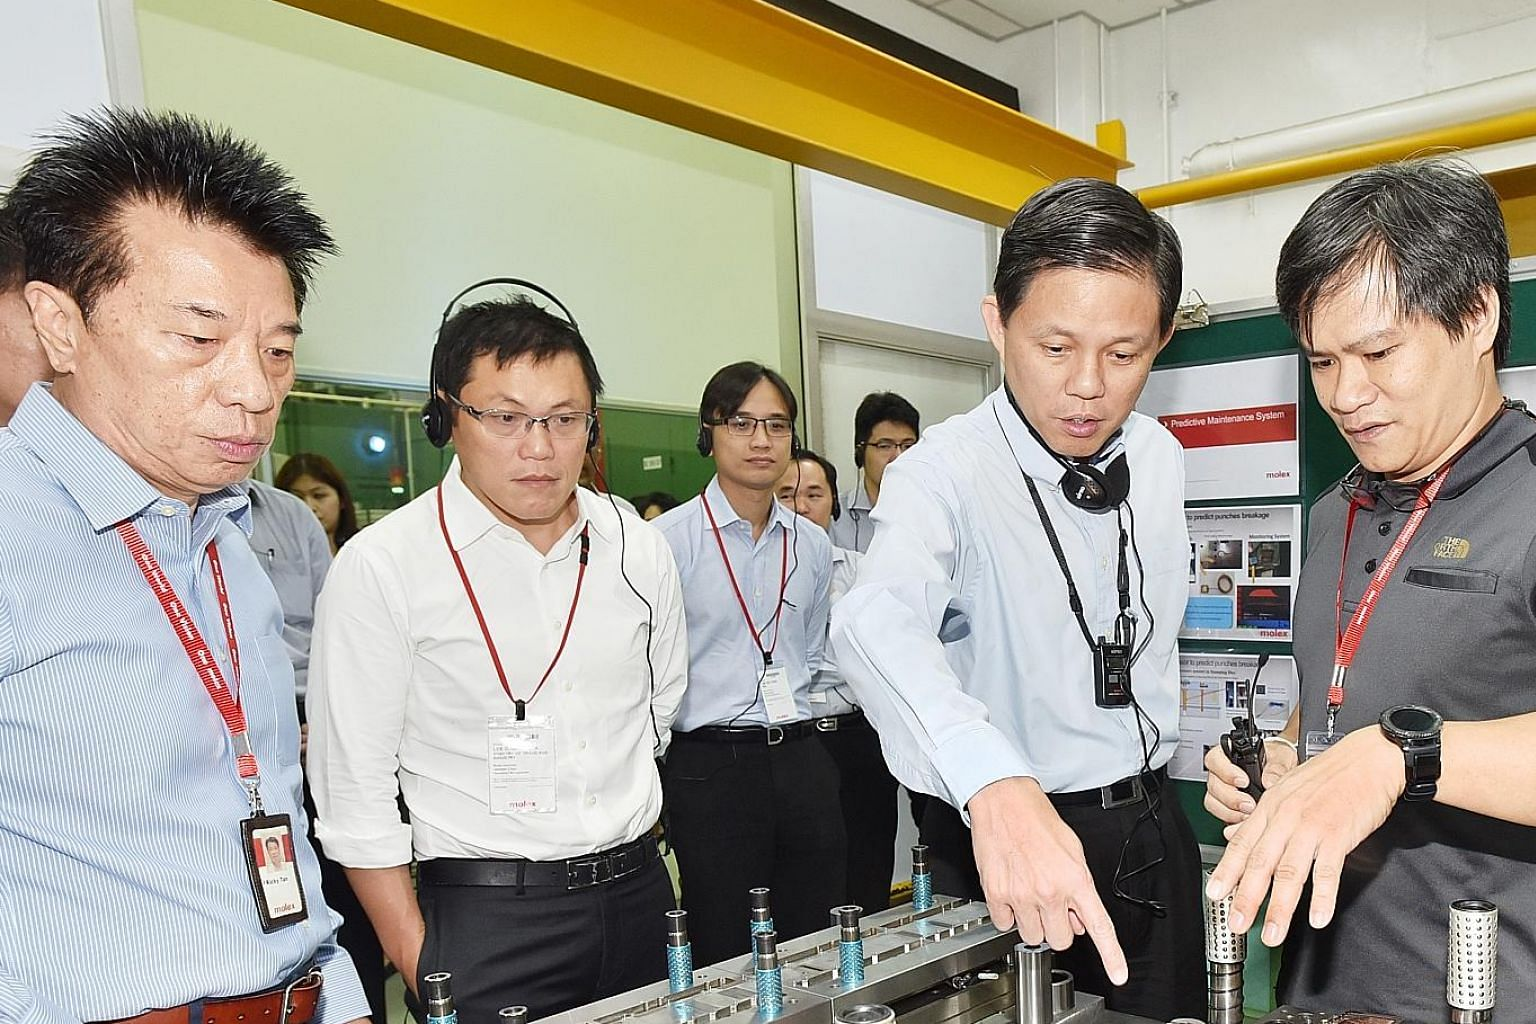 Minister of Trade and Industry Chan Chun Sing (second from right) during a visit to Molex Singapore's factory yesterday to view its automation and upskilling efforts.